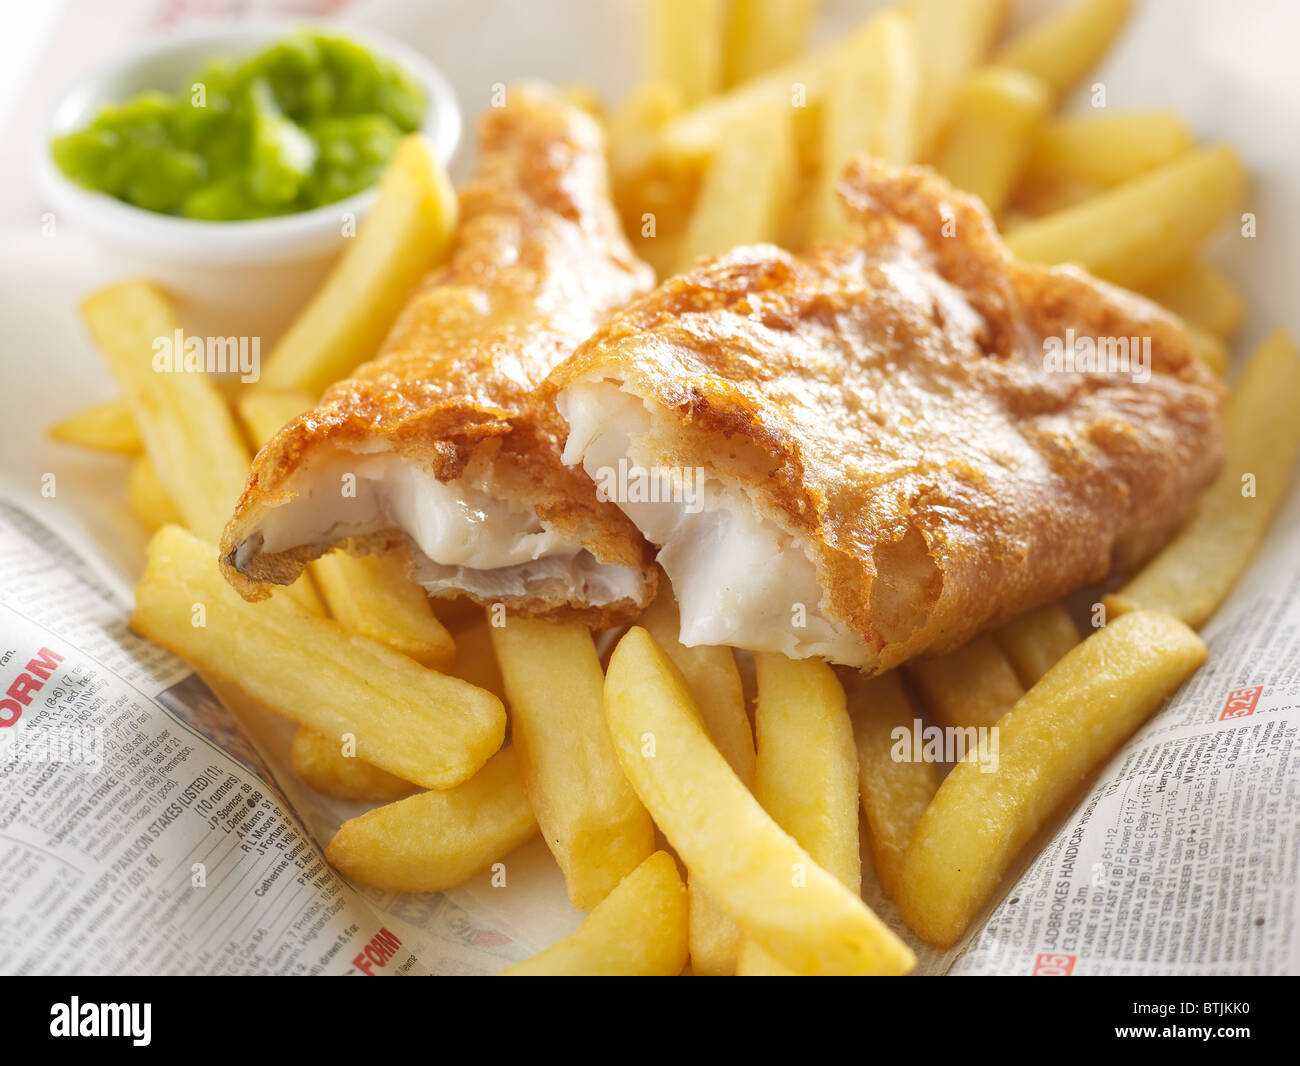 fish and chips to take away - Stock Image